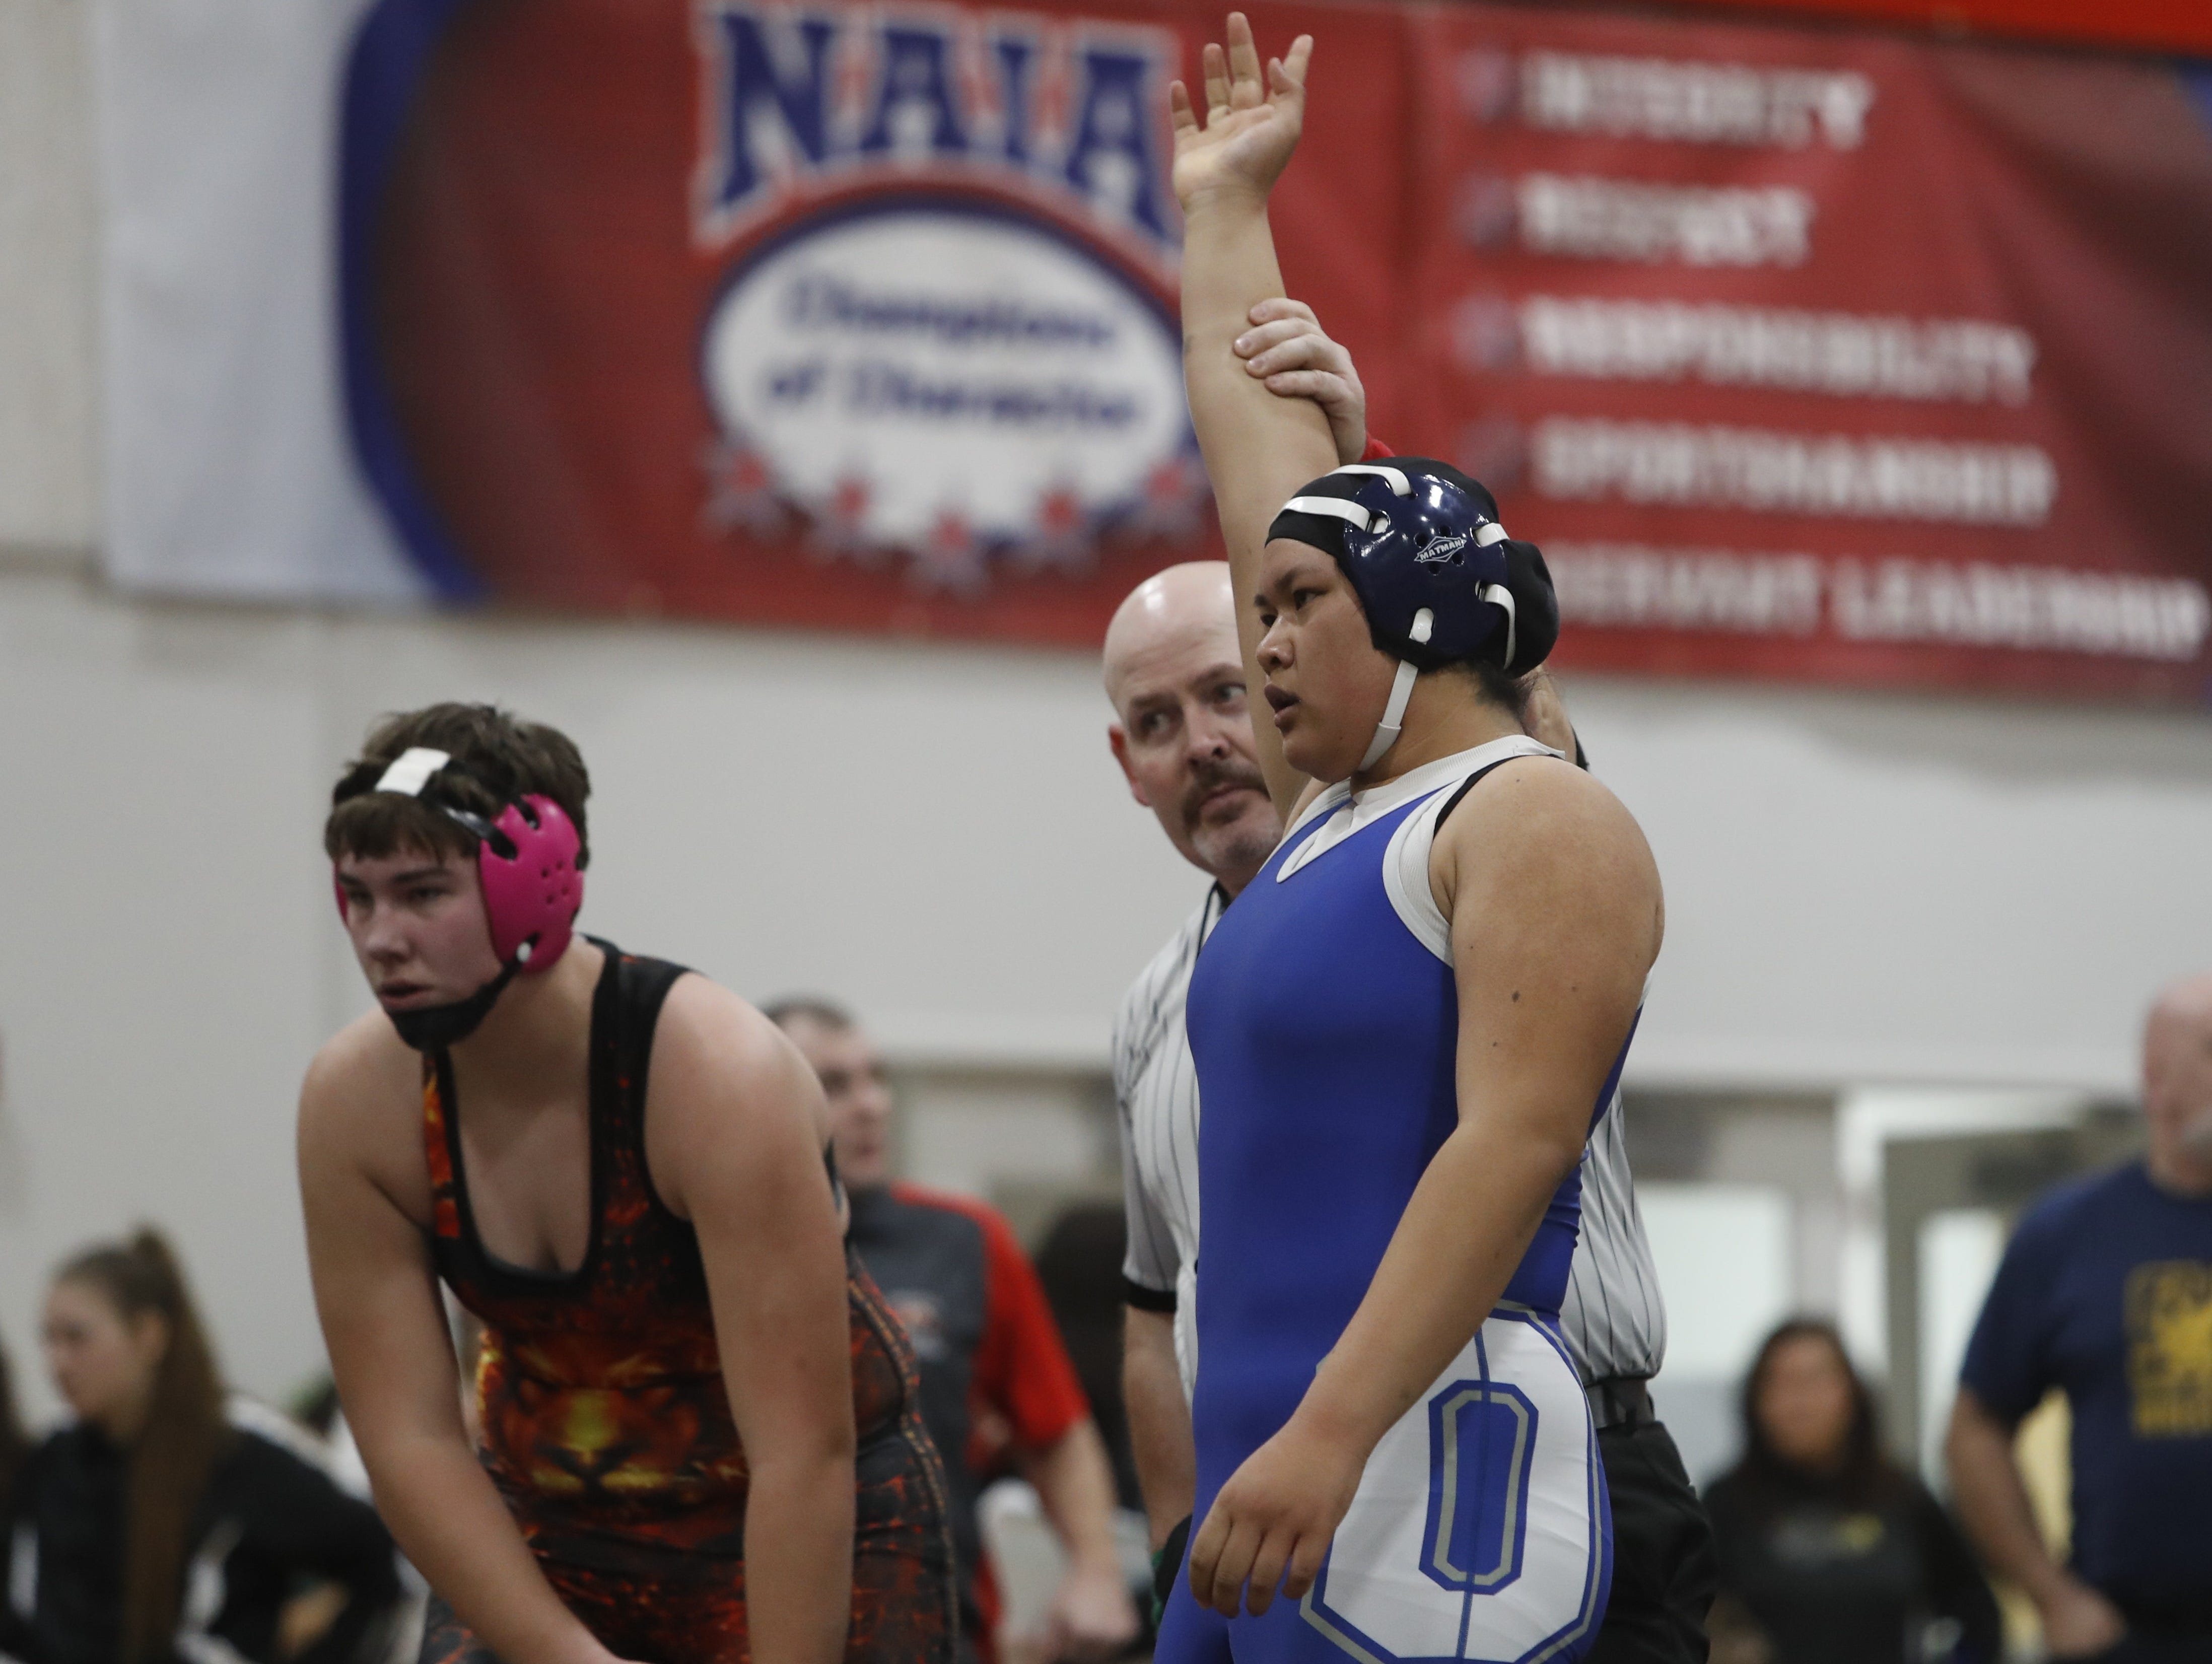 California's Nyla Thitphaneth of Orland (right) defeats her Oregonian opponent at the ORCA Senior All-Star Duals at Simpson University on Saturday, March 9.